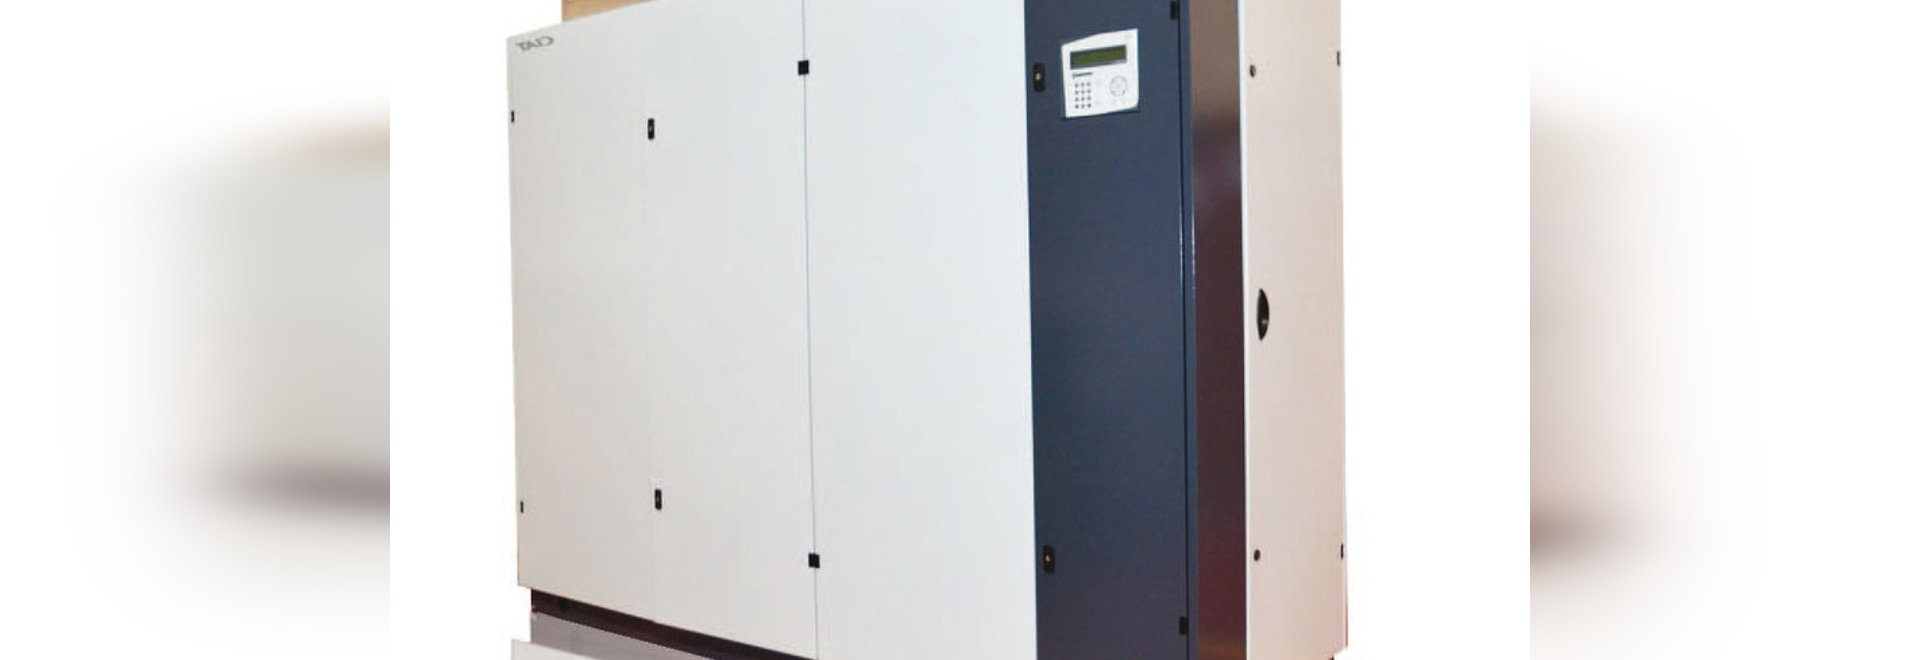 NEW: floor-mounted air conditioning unit by CIAT - CIAT